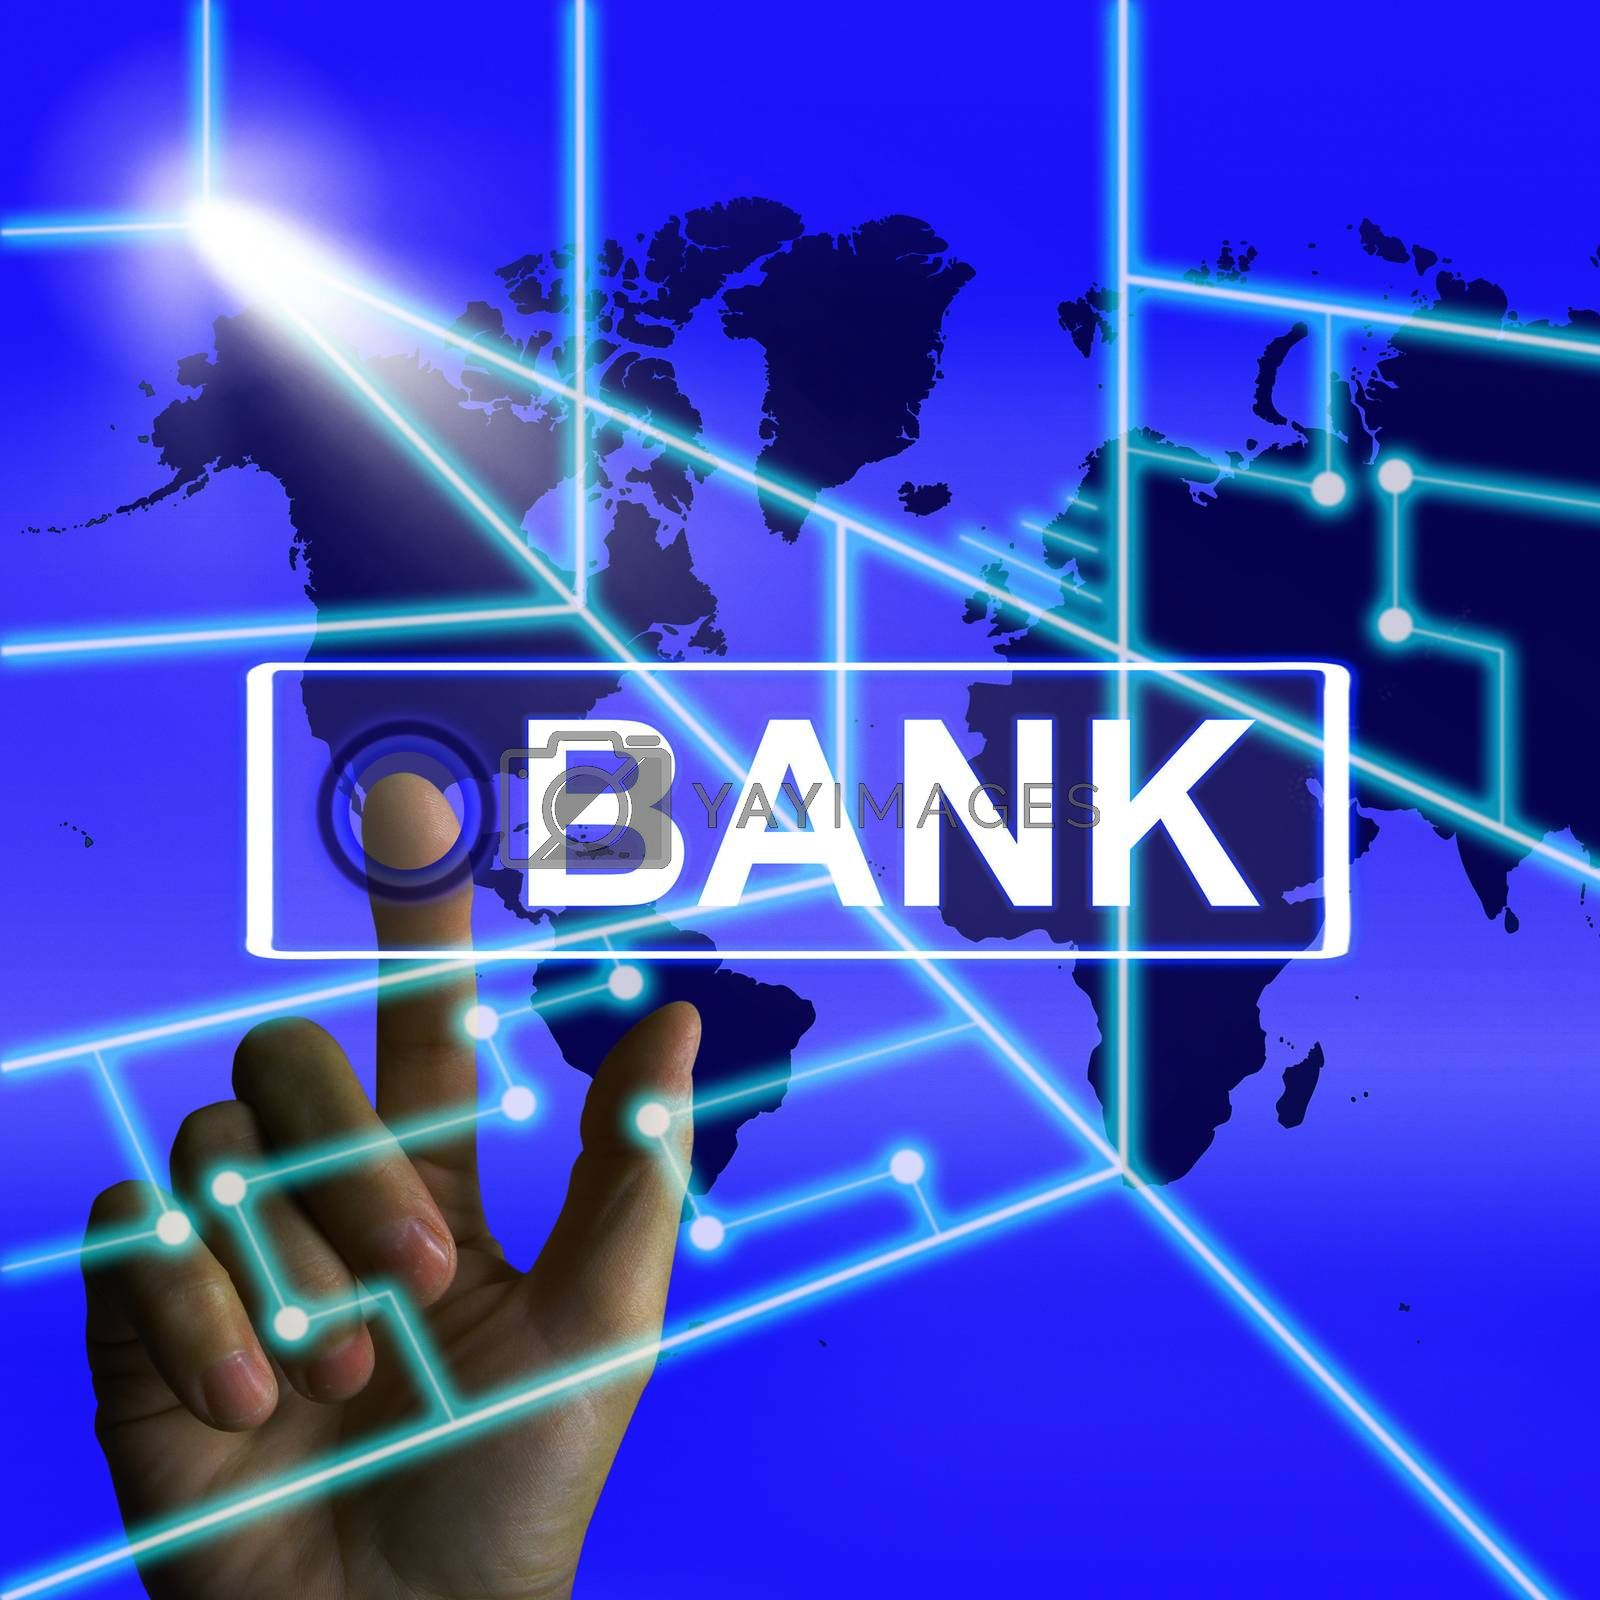 Bank Screen Indicates Online and Internet Banking by stuartmiles